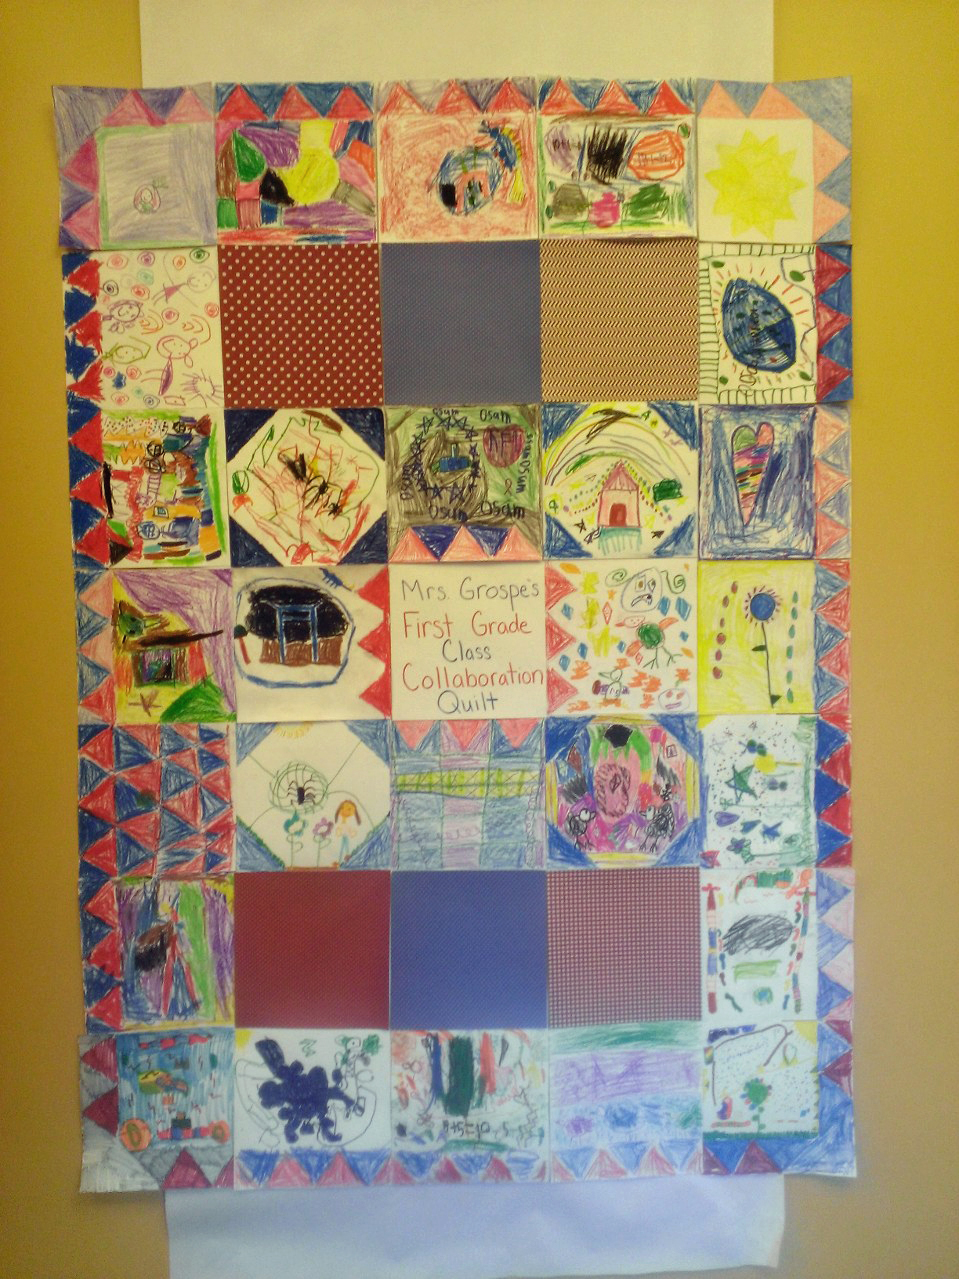 1st Grade - Collaboration Quilt